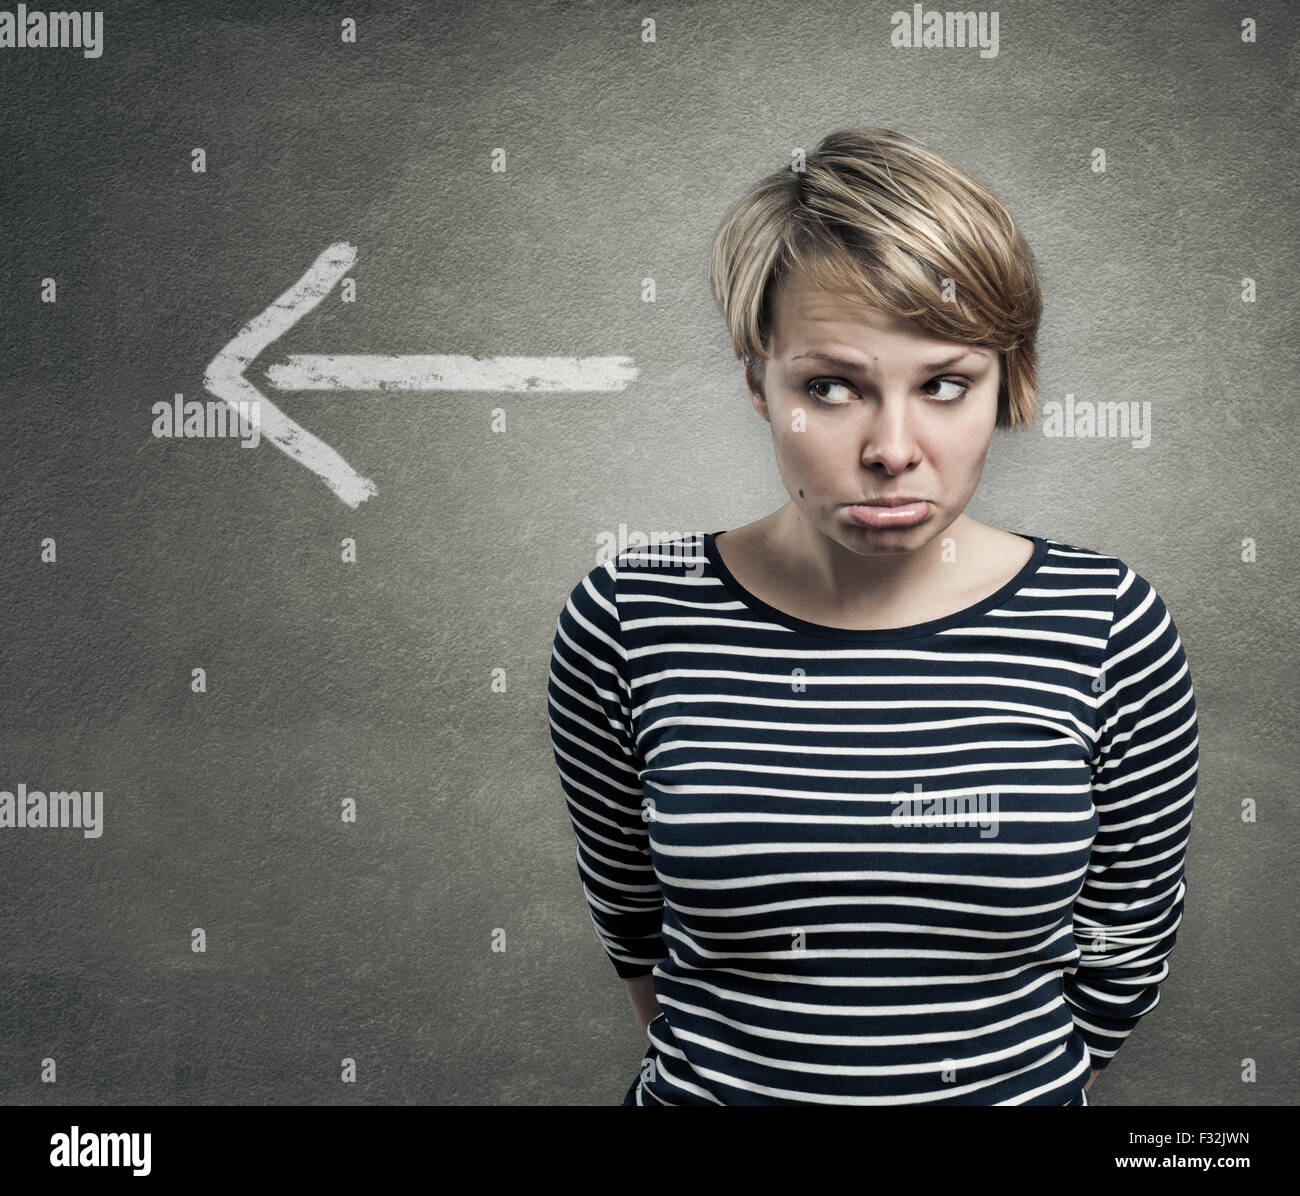 Concept of a guilty person, confused, ashamed - Stock Image